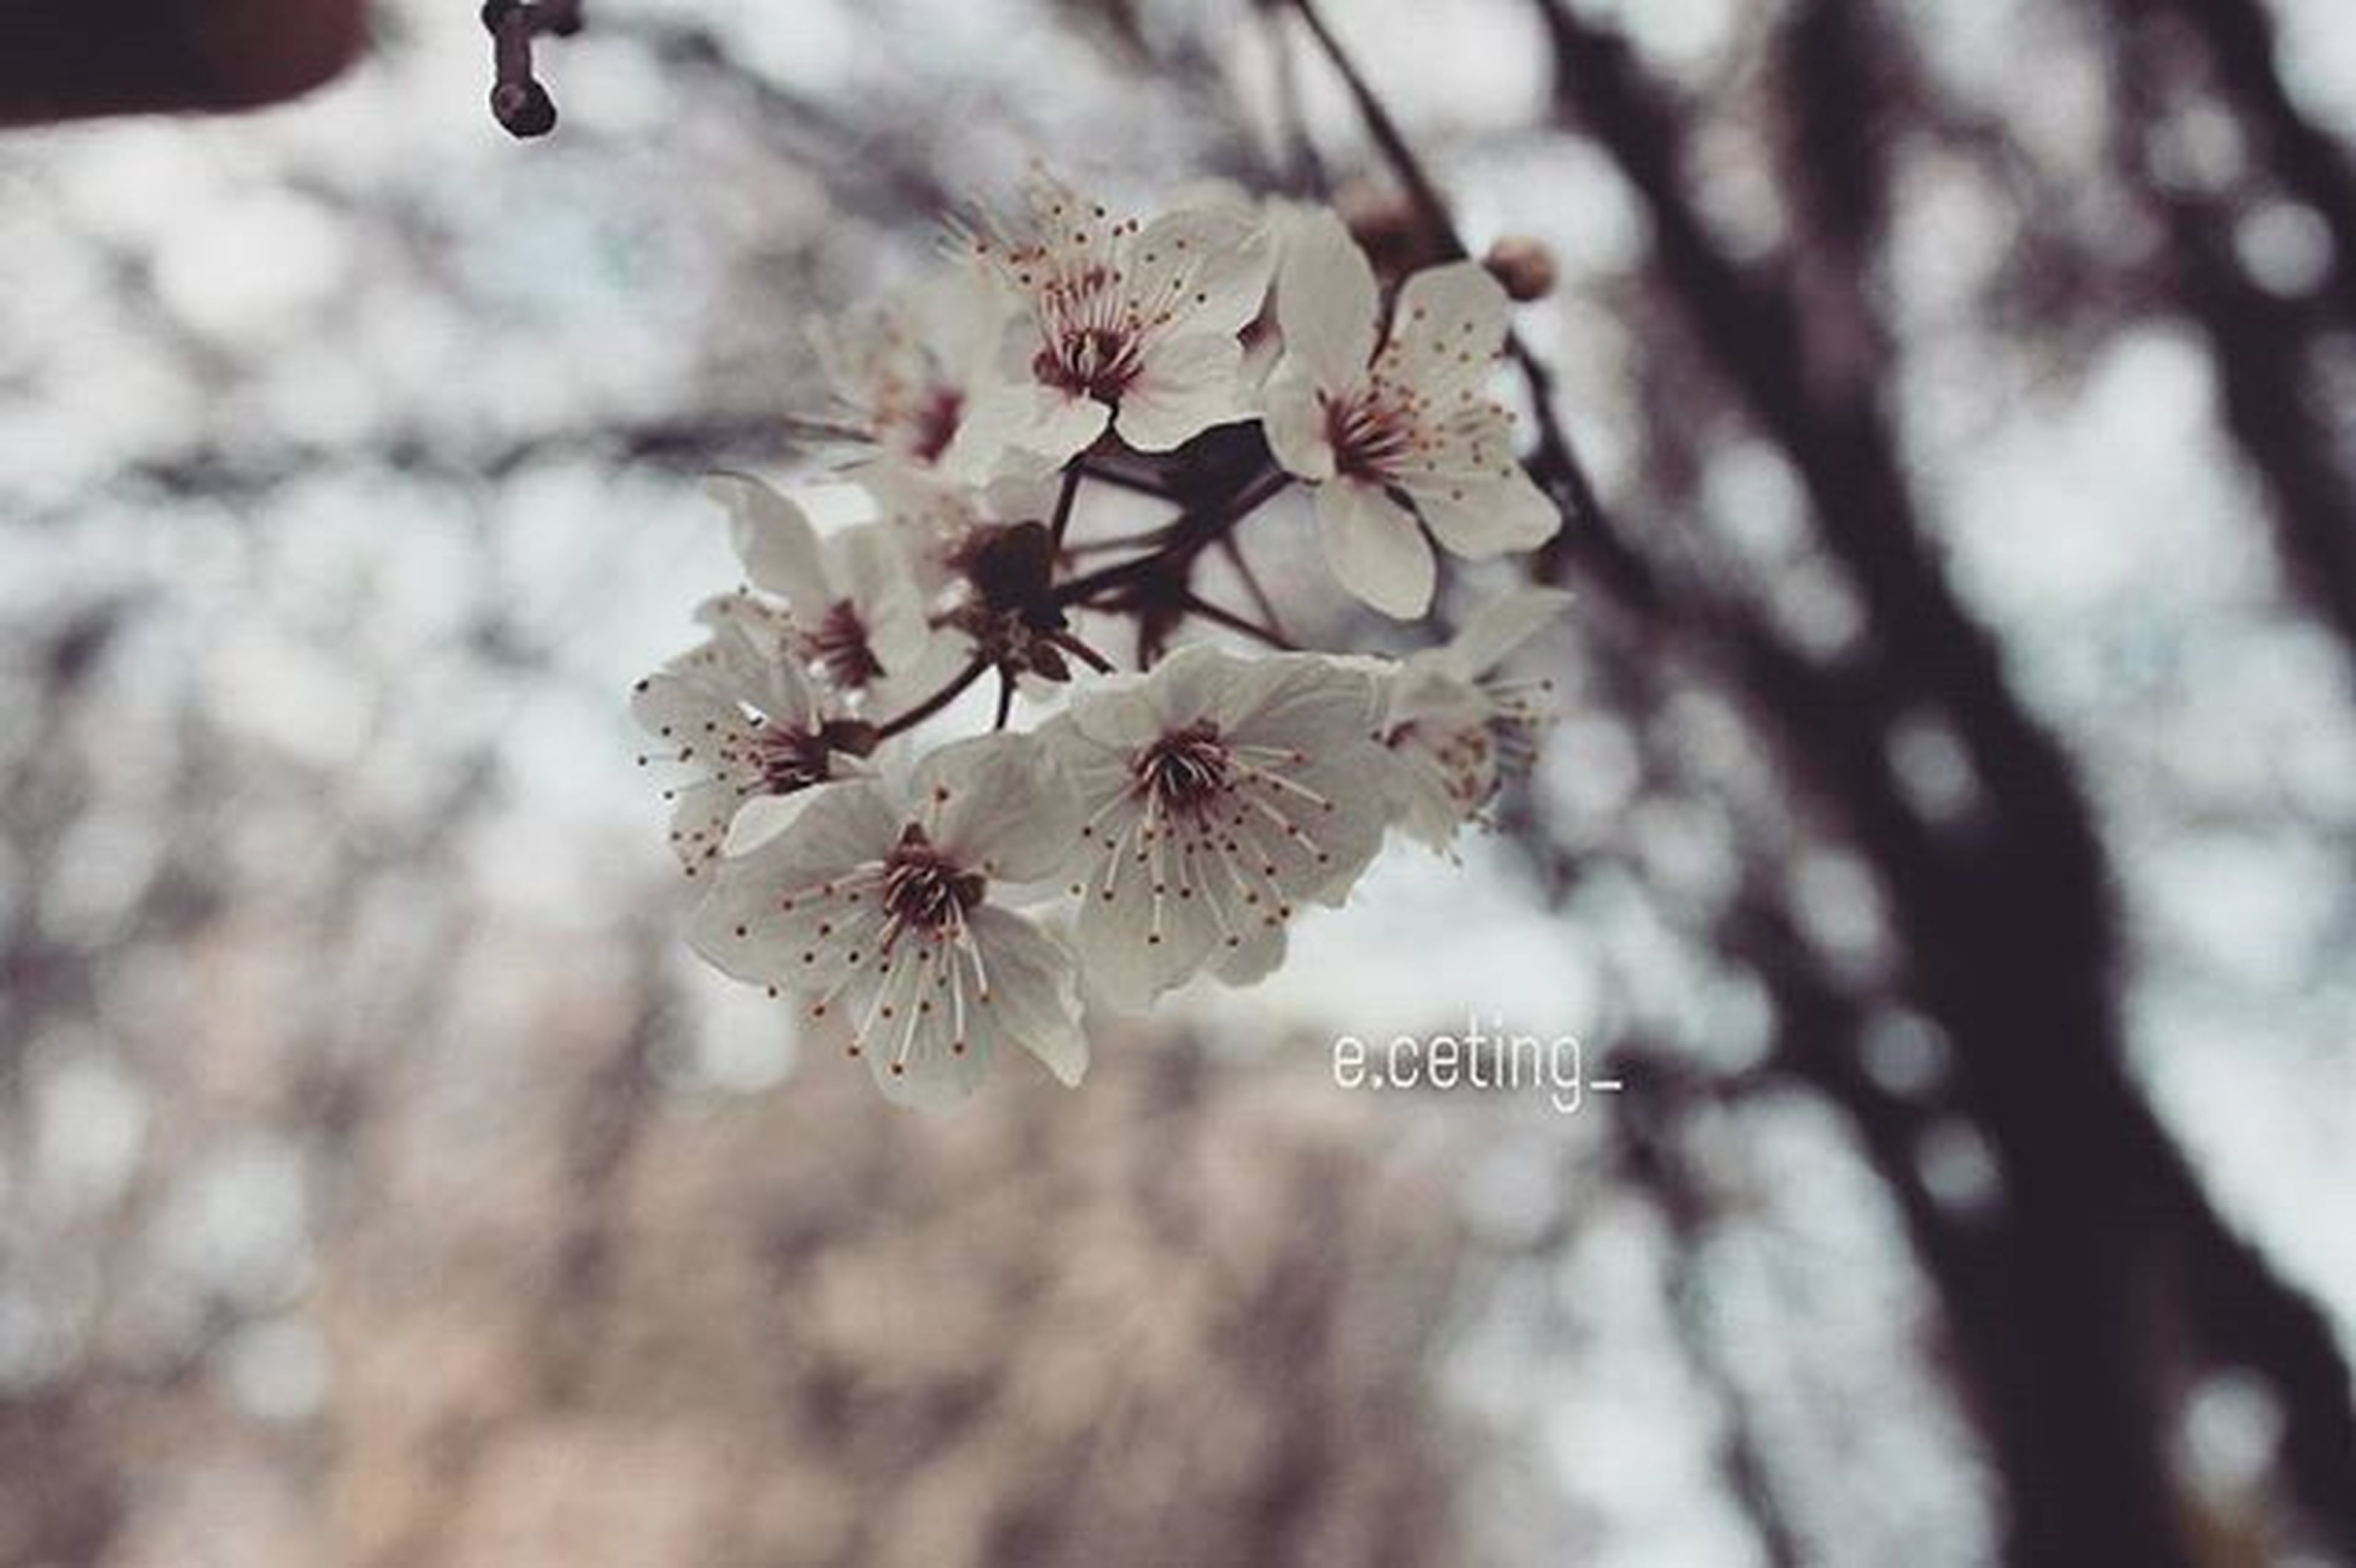 flower, freshness, branch, cherry blossom, tree, cherry tree, fragility, growth, blossom, beauty in nature, fruit tree, nature, focus on foreground, petal, close-up, in bloom, twig, springtime, blooming, pink color